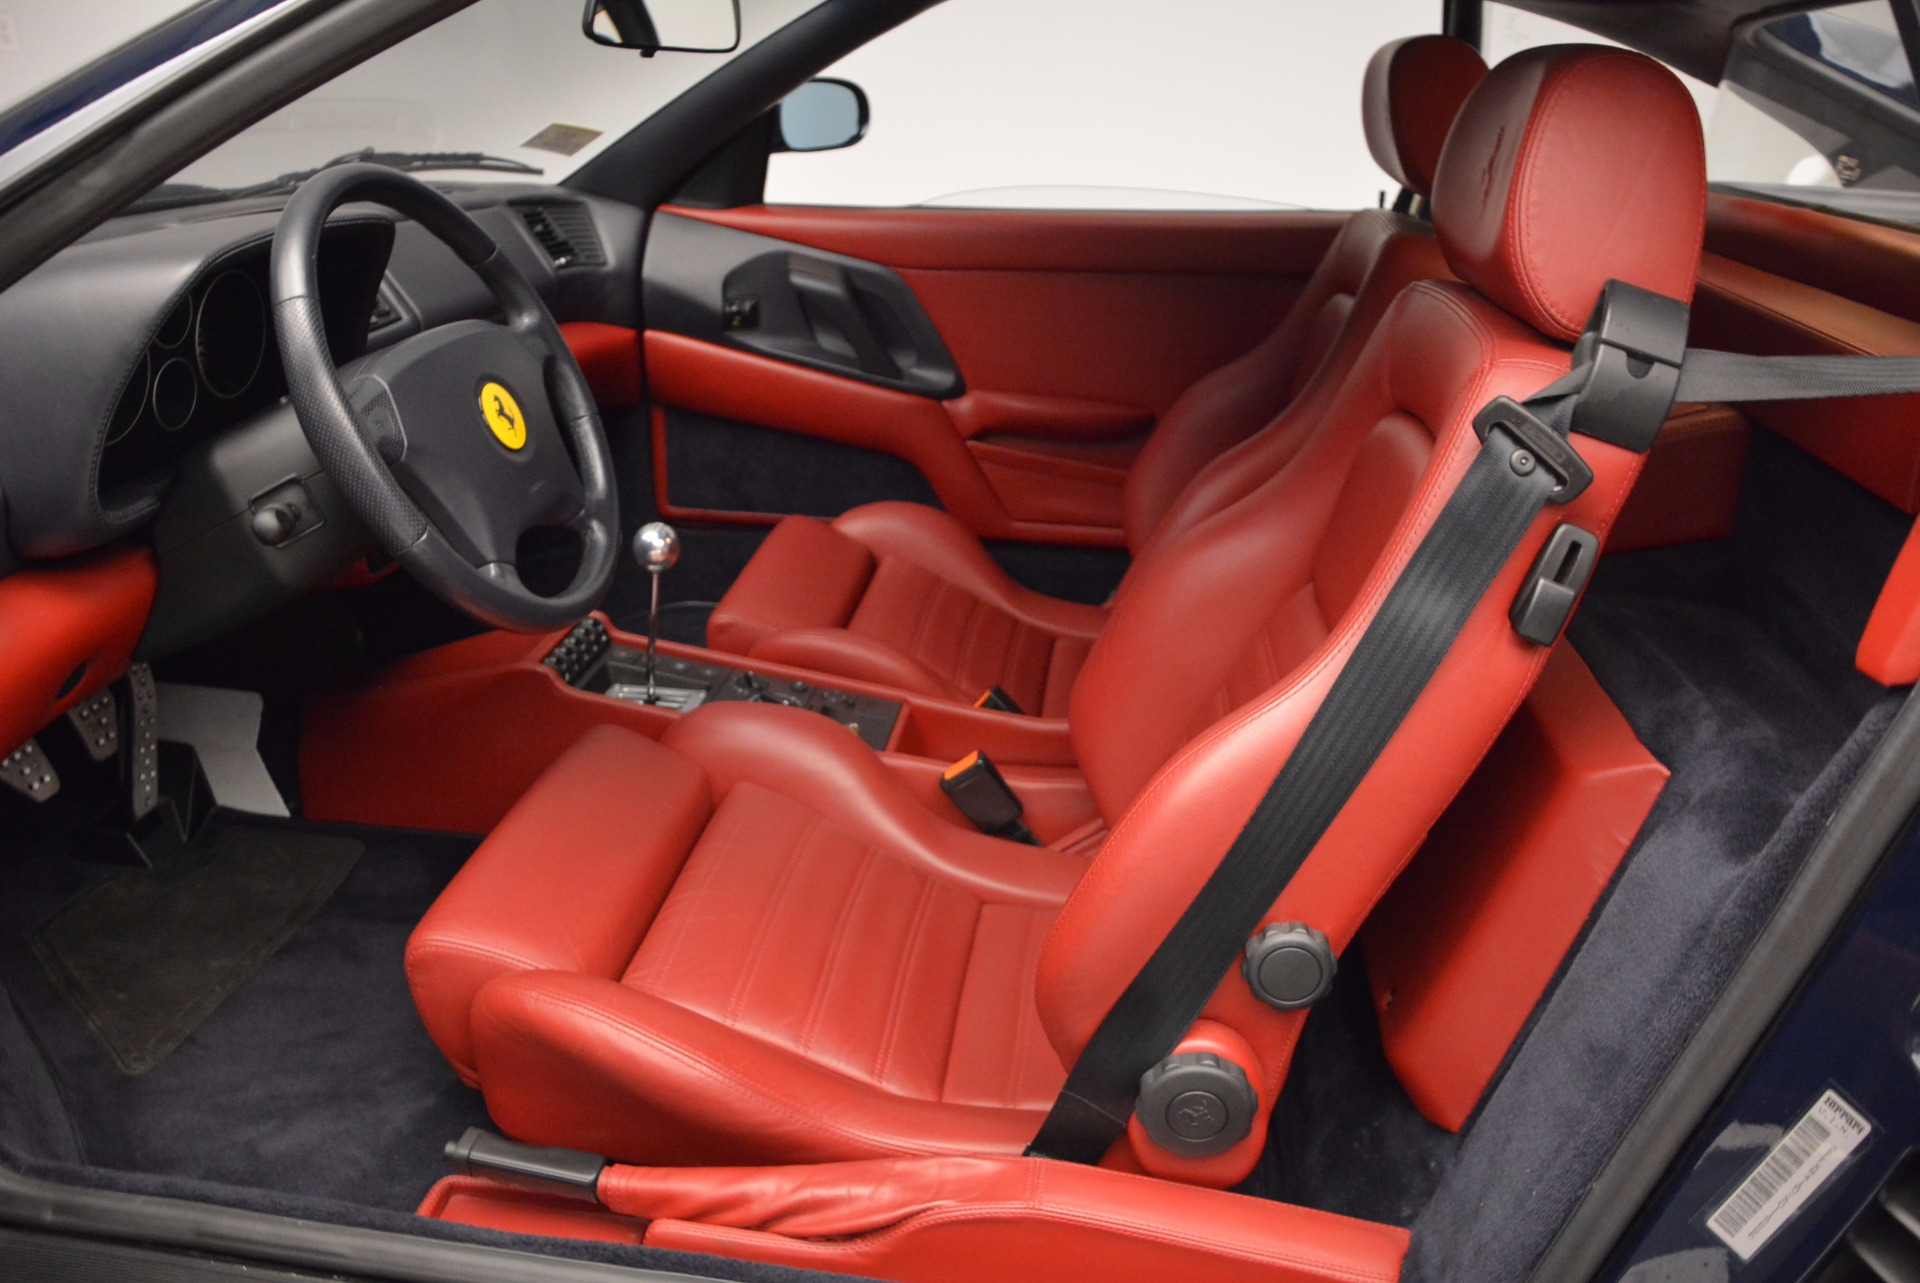 Used 1999 Ferrari 355 Berlinetta For Sale In Westport, CT 855_p15